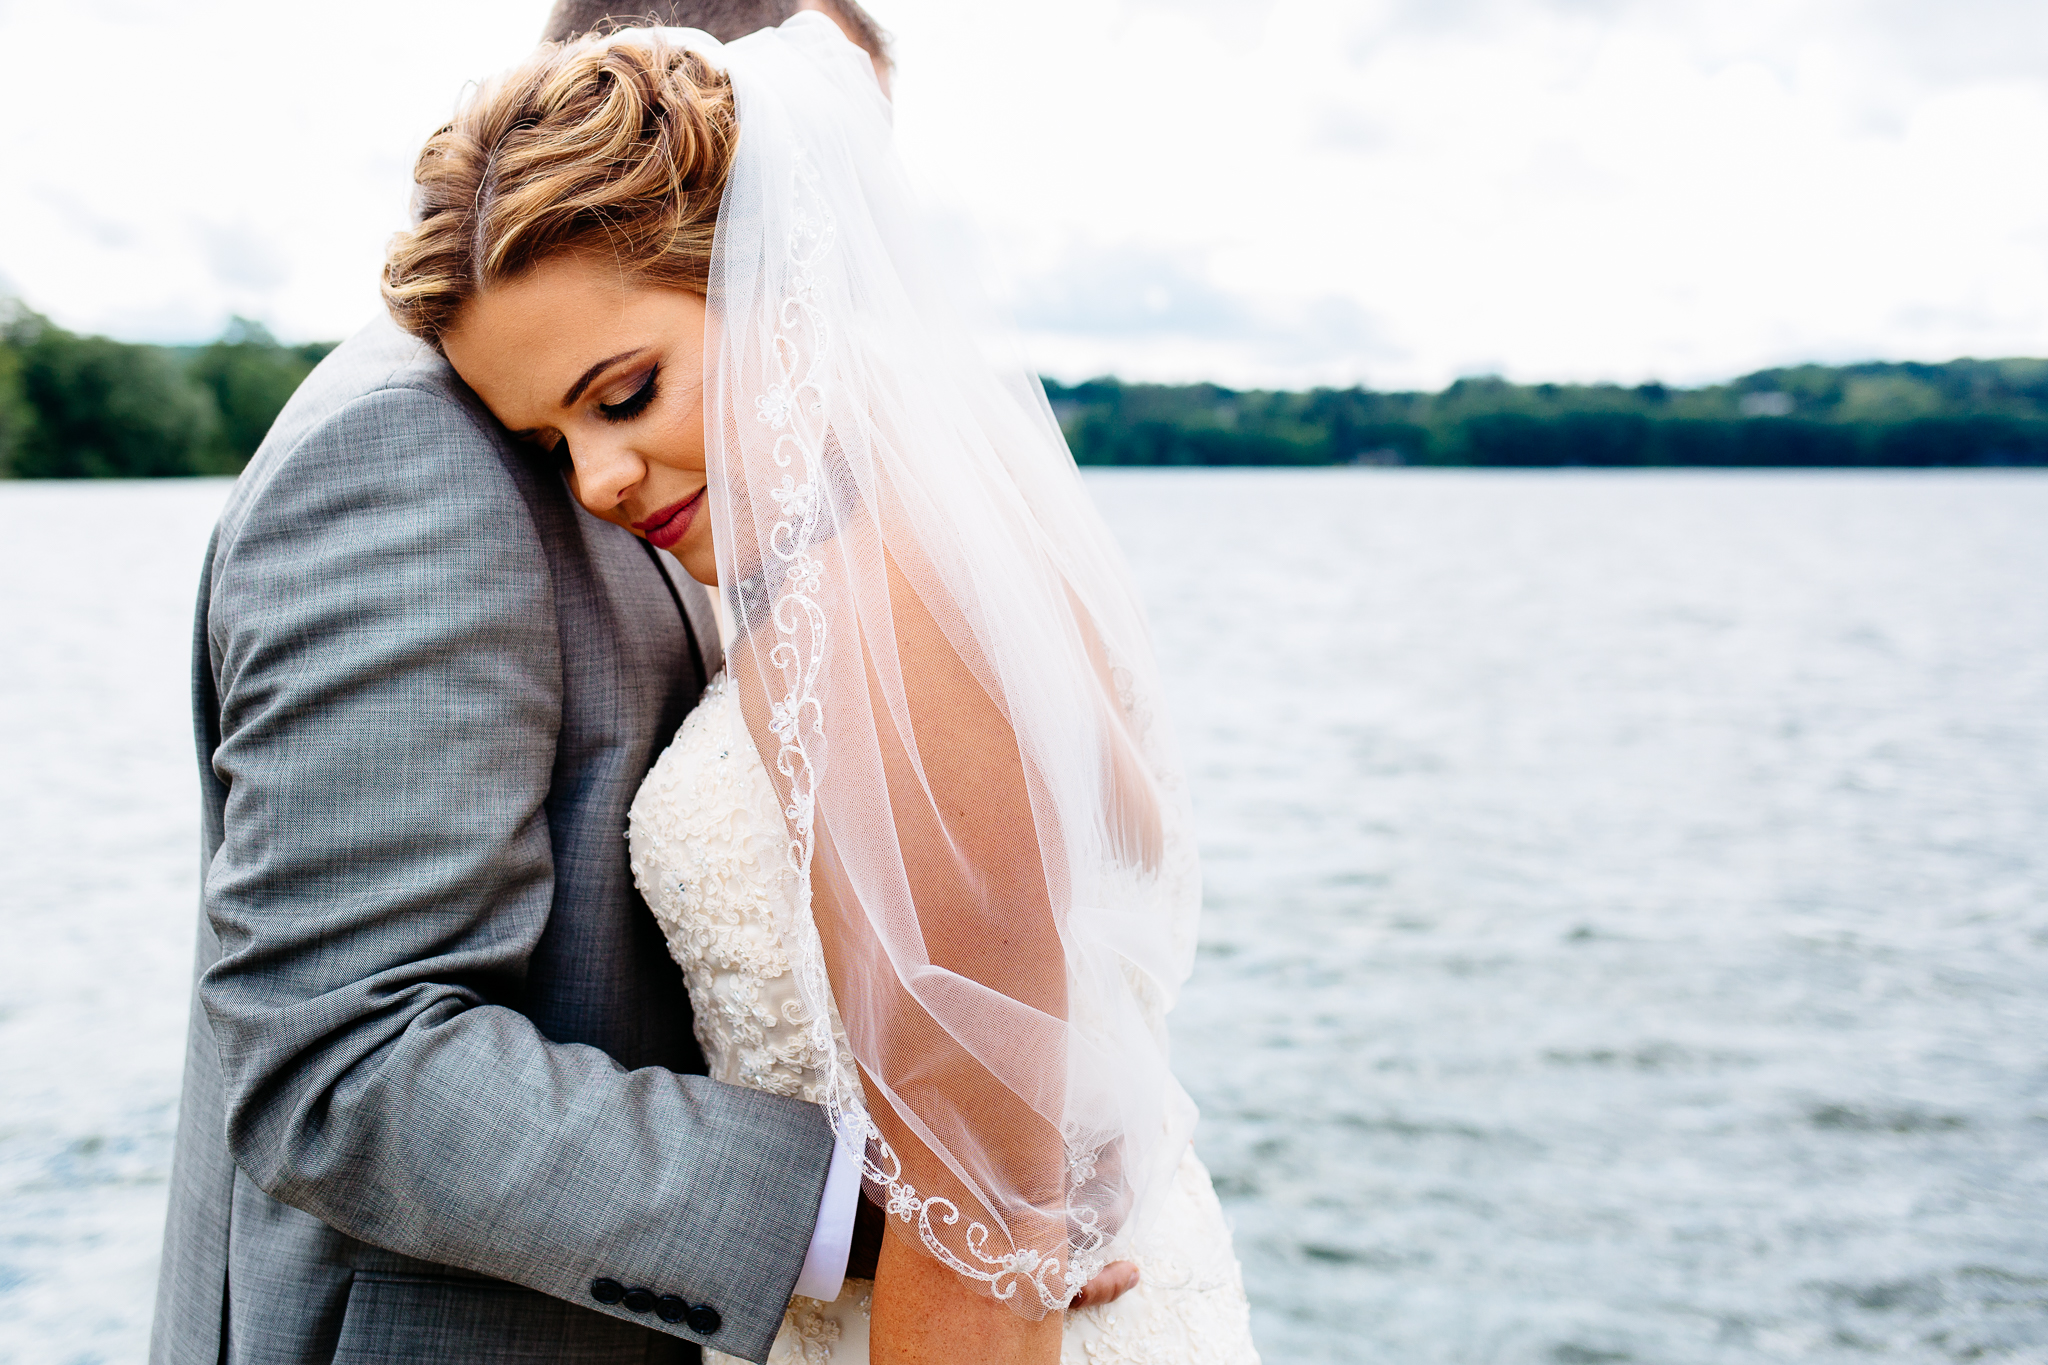 Bride and GROOM HUG DURING THEIR WEDDING DAY IN SYRACUSE, NY. THEY ARE IN FRONT OF A LAKE. THE BRIDE HAS A VEIL DRAPING HER BODY. THE IMAGE IS BY SYRACUSE WEDDING PHOTOGRAPHER, CALYPSO RAE PHOTOGRAPHY.